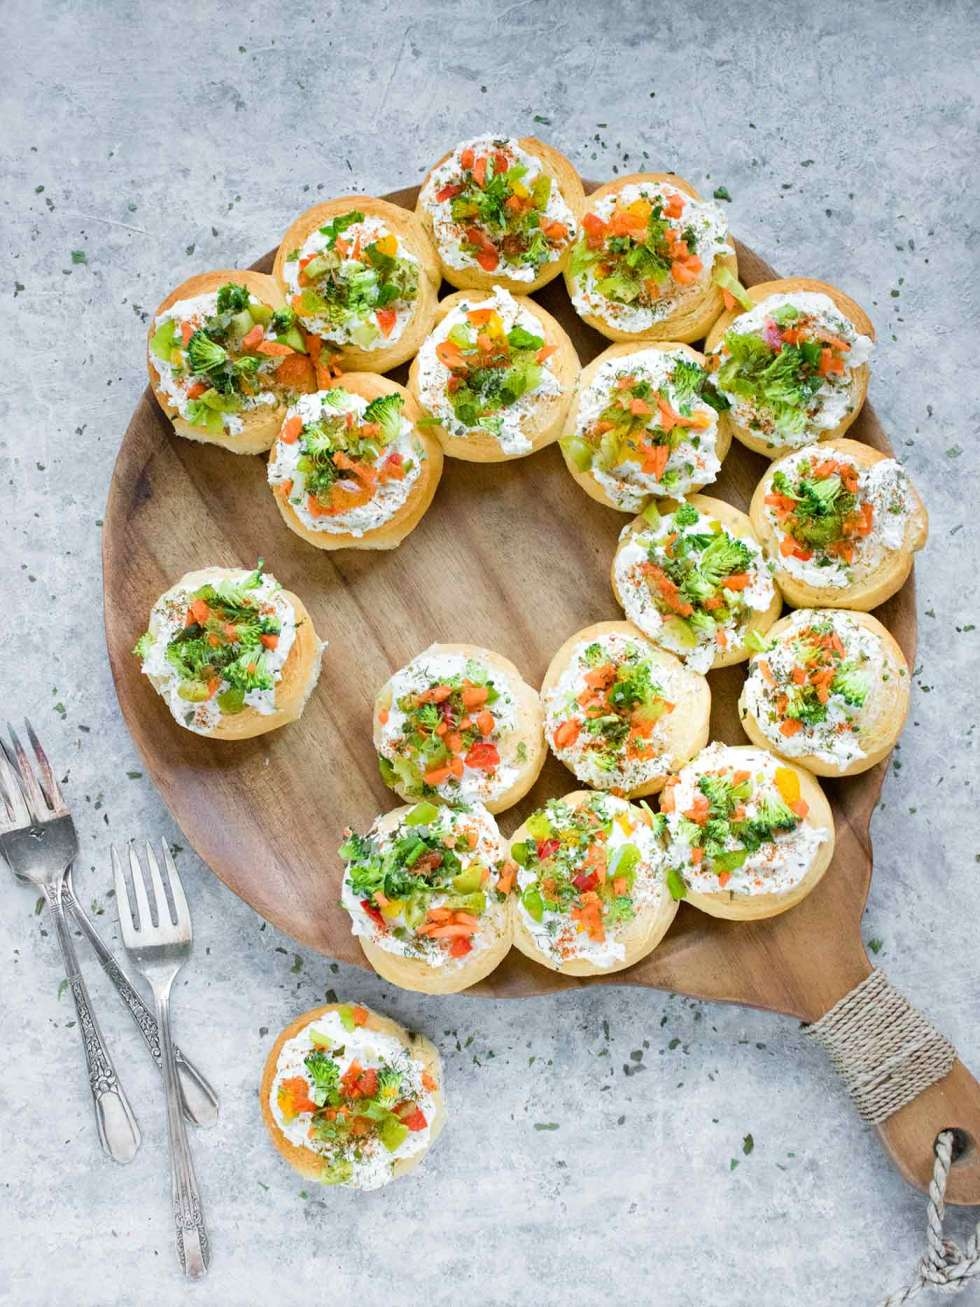 Christmas Wreath Appetizers on a serving board